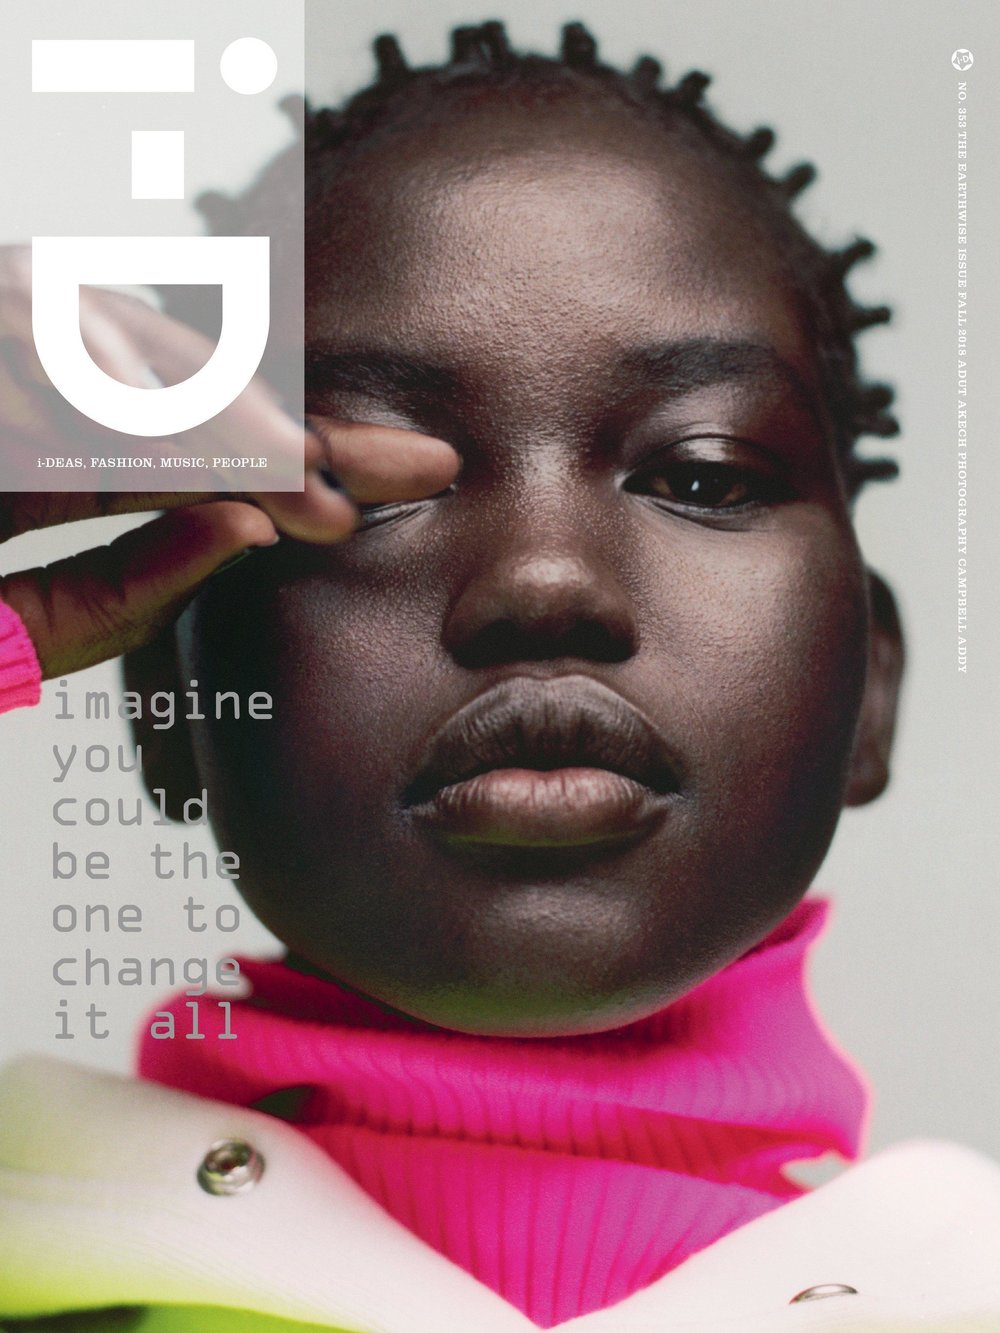 id magazine - i-D is a British bimonthly magazine dedicated to fashion, music, art and youth culture. i-D was founded by designer and former Vogue art director Terry Jones in 1980. The first issue was published in the form of a hand-stapled fanzine with text produced on a typewriter.